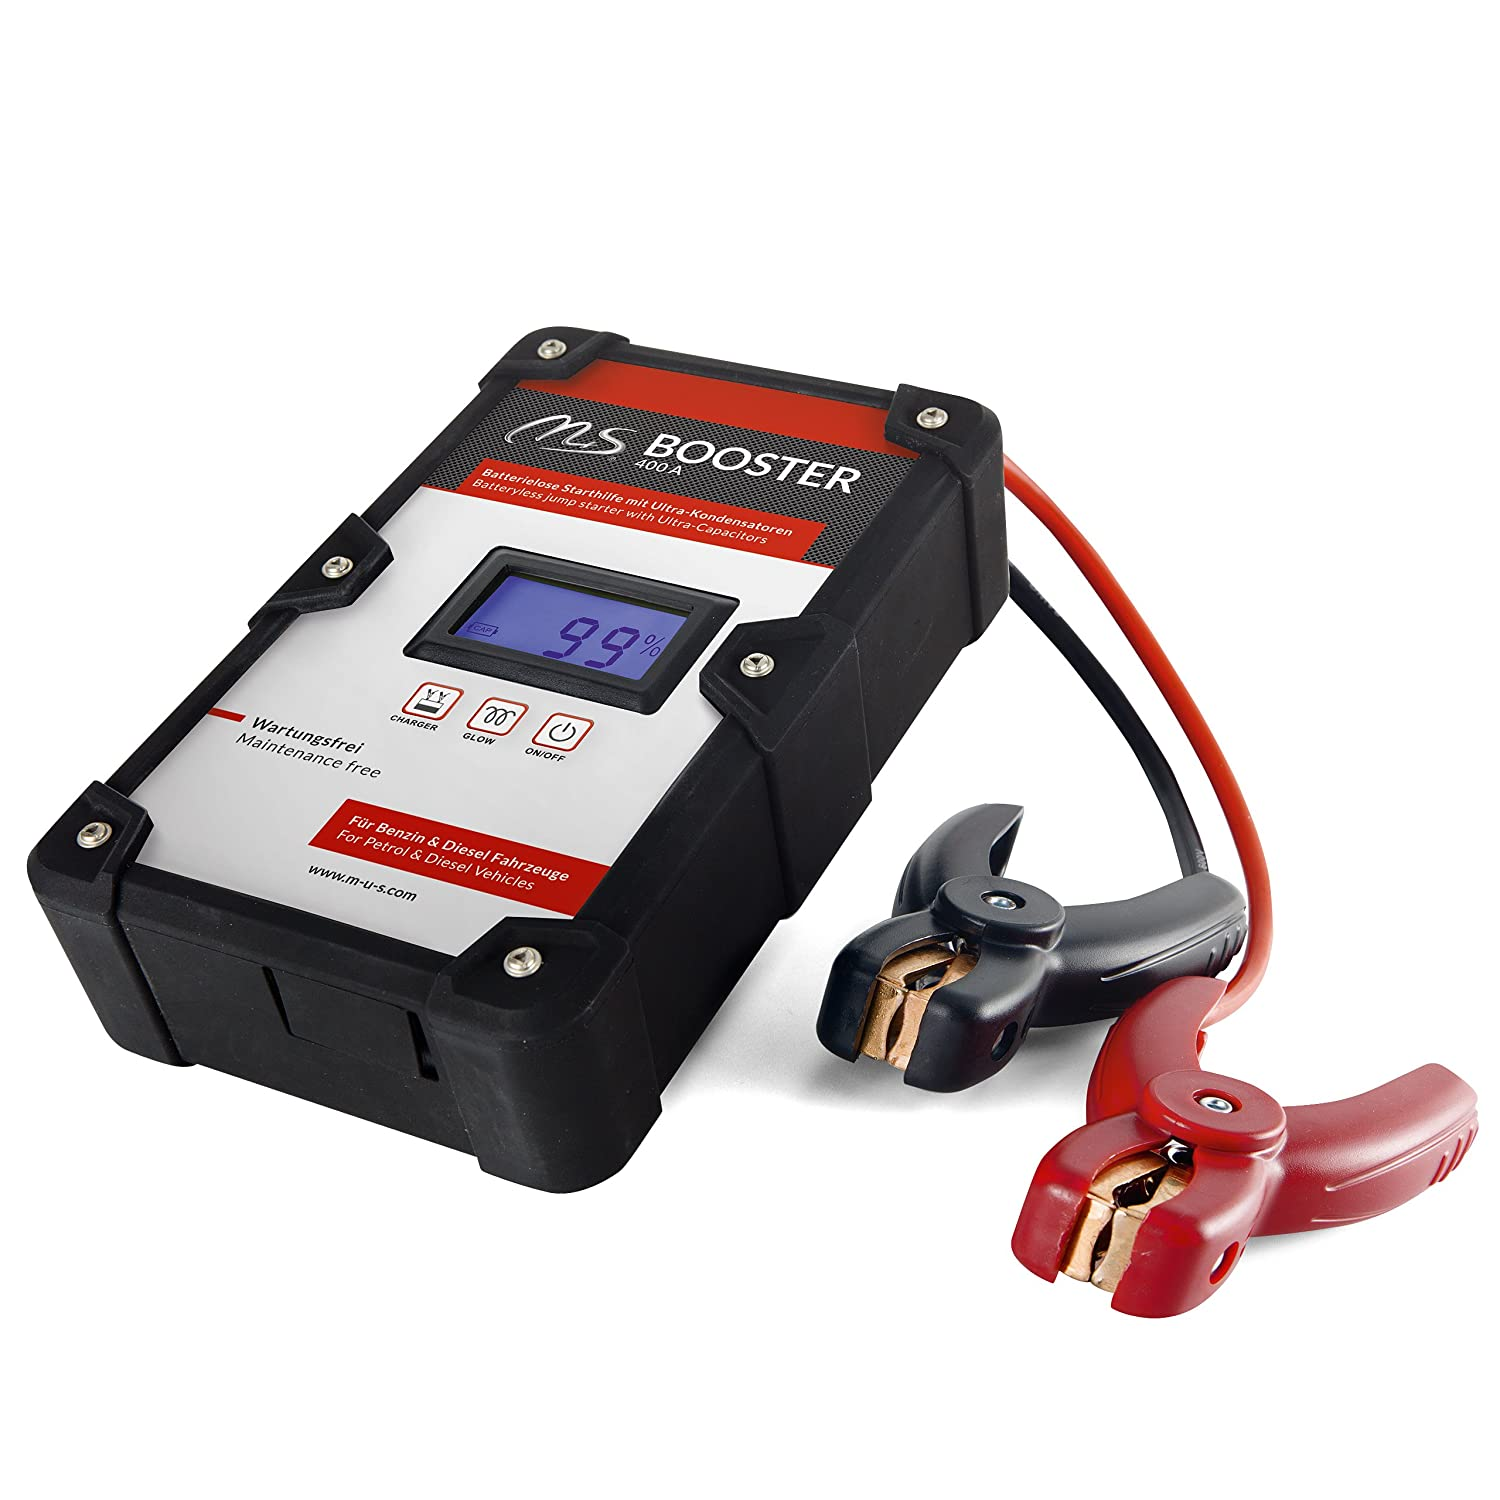 S batteryless 400A startup booster mobile motorbike and auto-starting aid for diesel and gasoline engines battery booster with ultra-capacitors for over 10,000 starts M 100 /% reliable